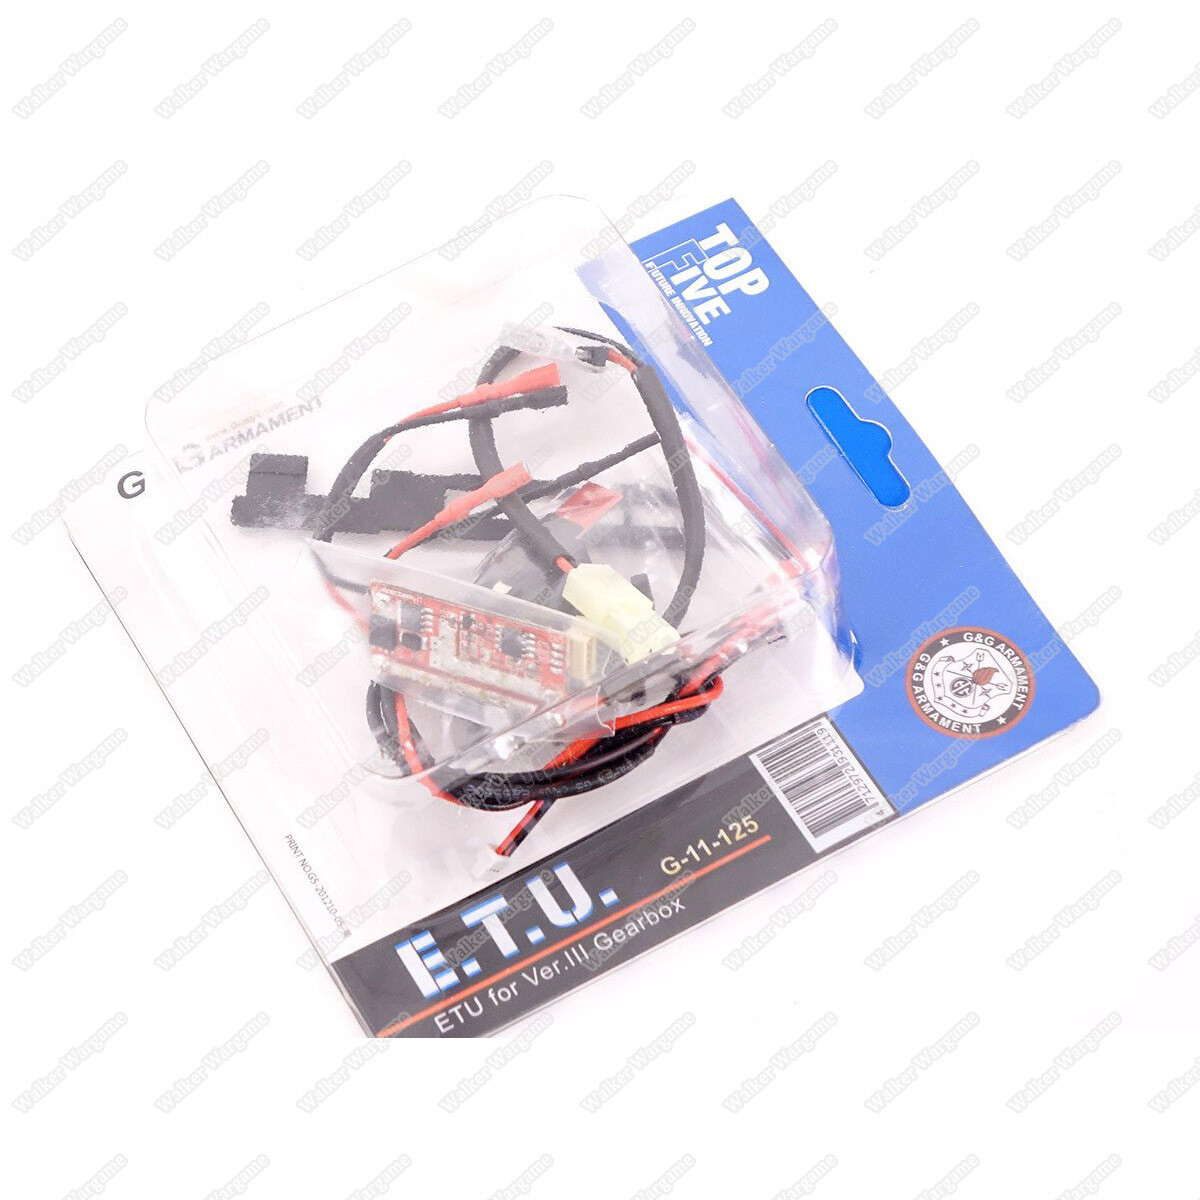 G&G ETU Electronic Trigger Unit and Mosfet - Series V3 Gearboxes